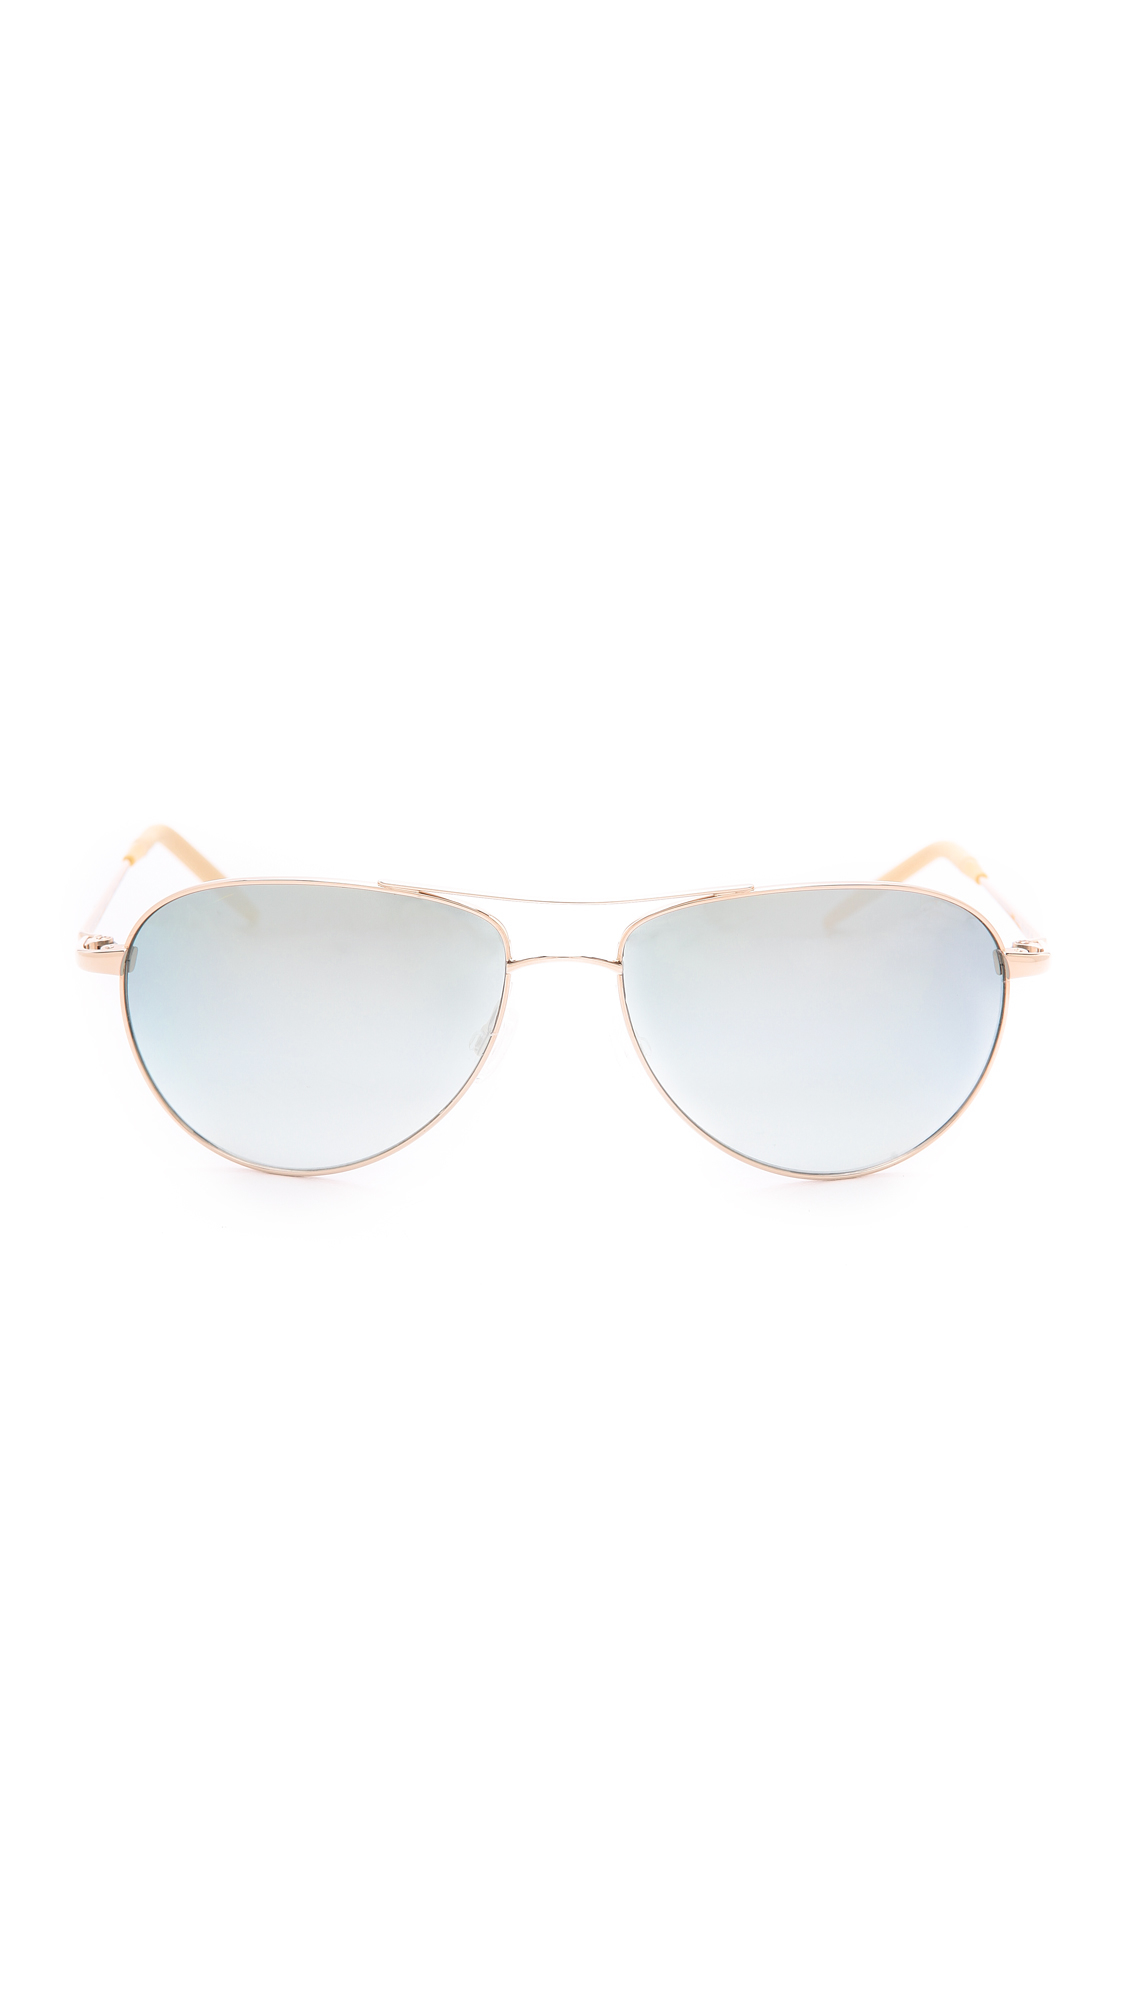 6dce15985f18 Lyst - Oliver Peoples Benedict Mirrored Sunglasses - Gold Steel ...